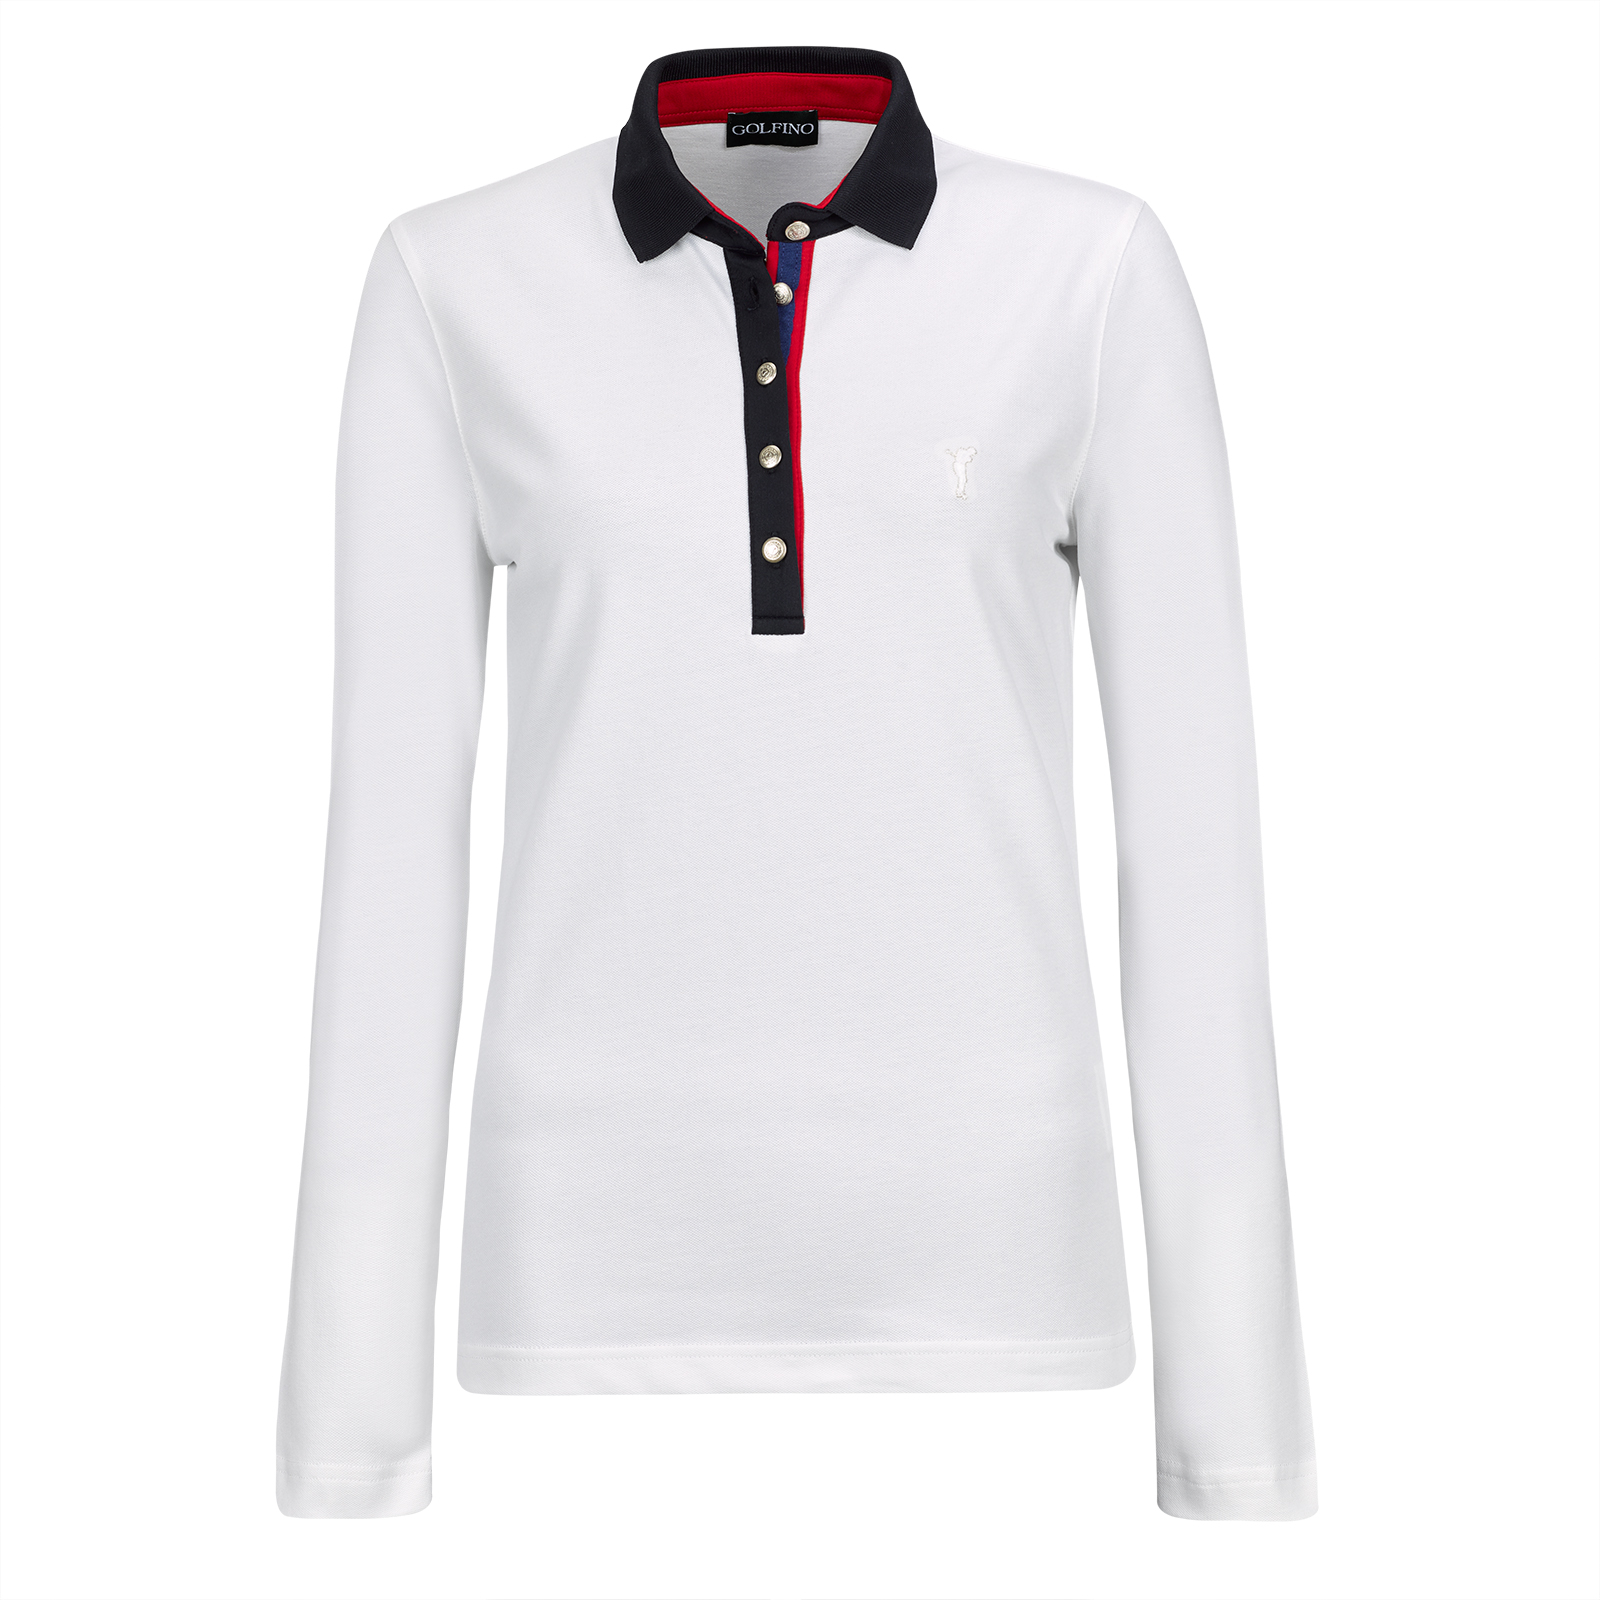 Long-sleeve Ladies' stretch polo from luxurious cotton blend in slim fit